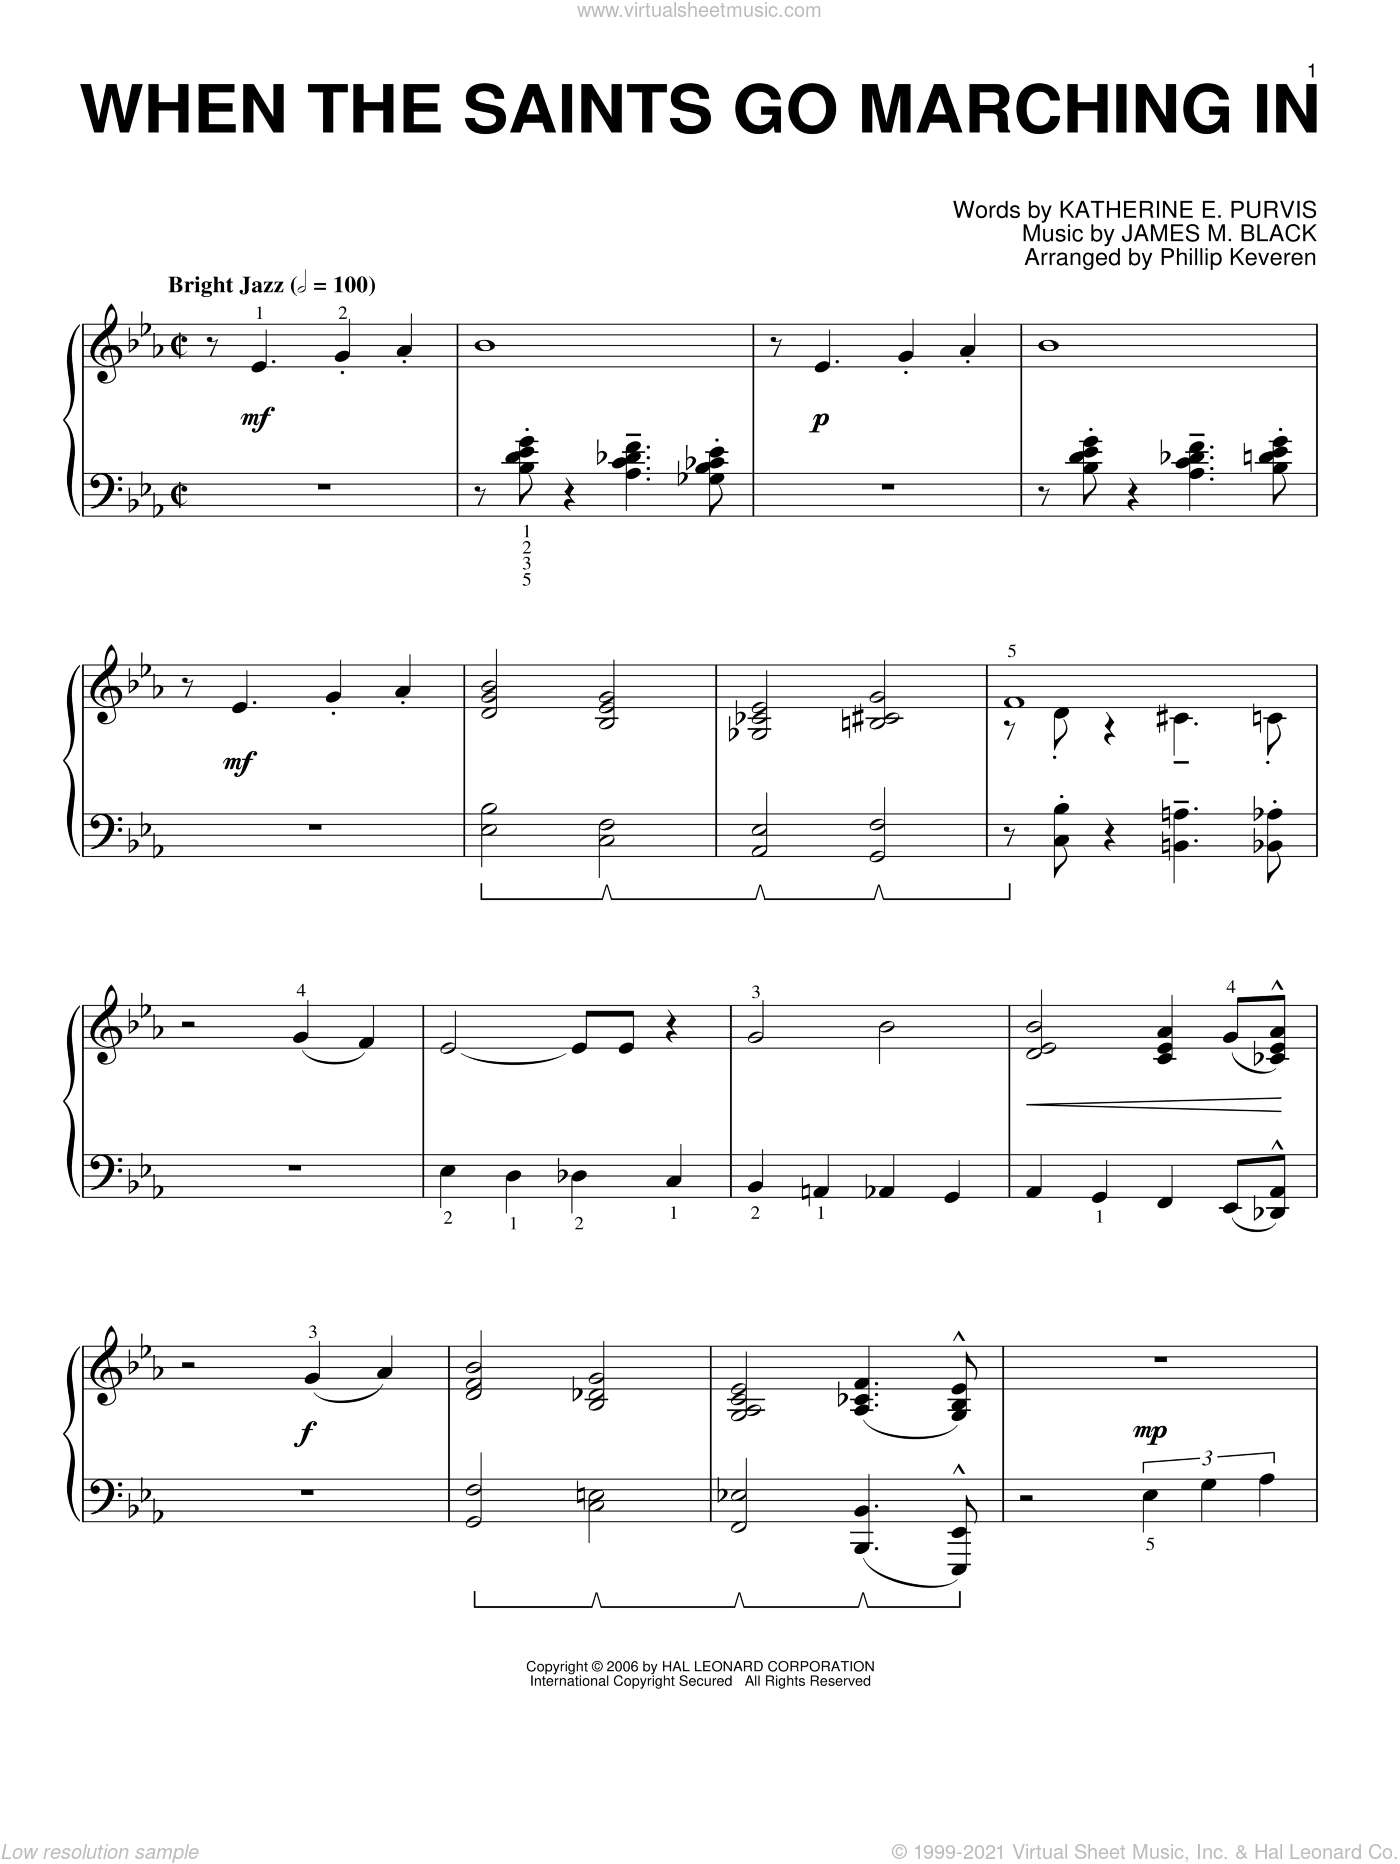 When The Saints Go Marching In sheet music for piano solo by Katherine E. Purvis